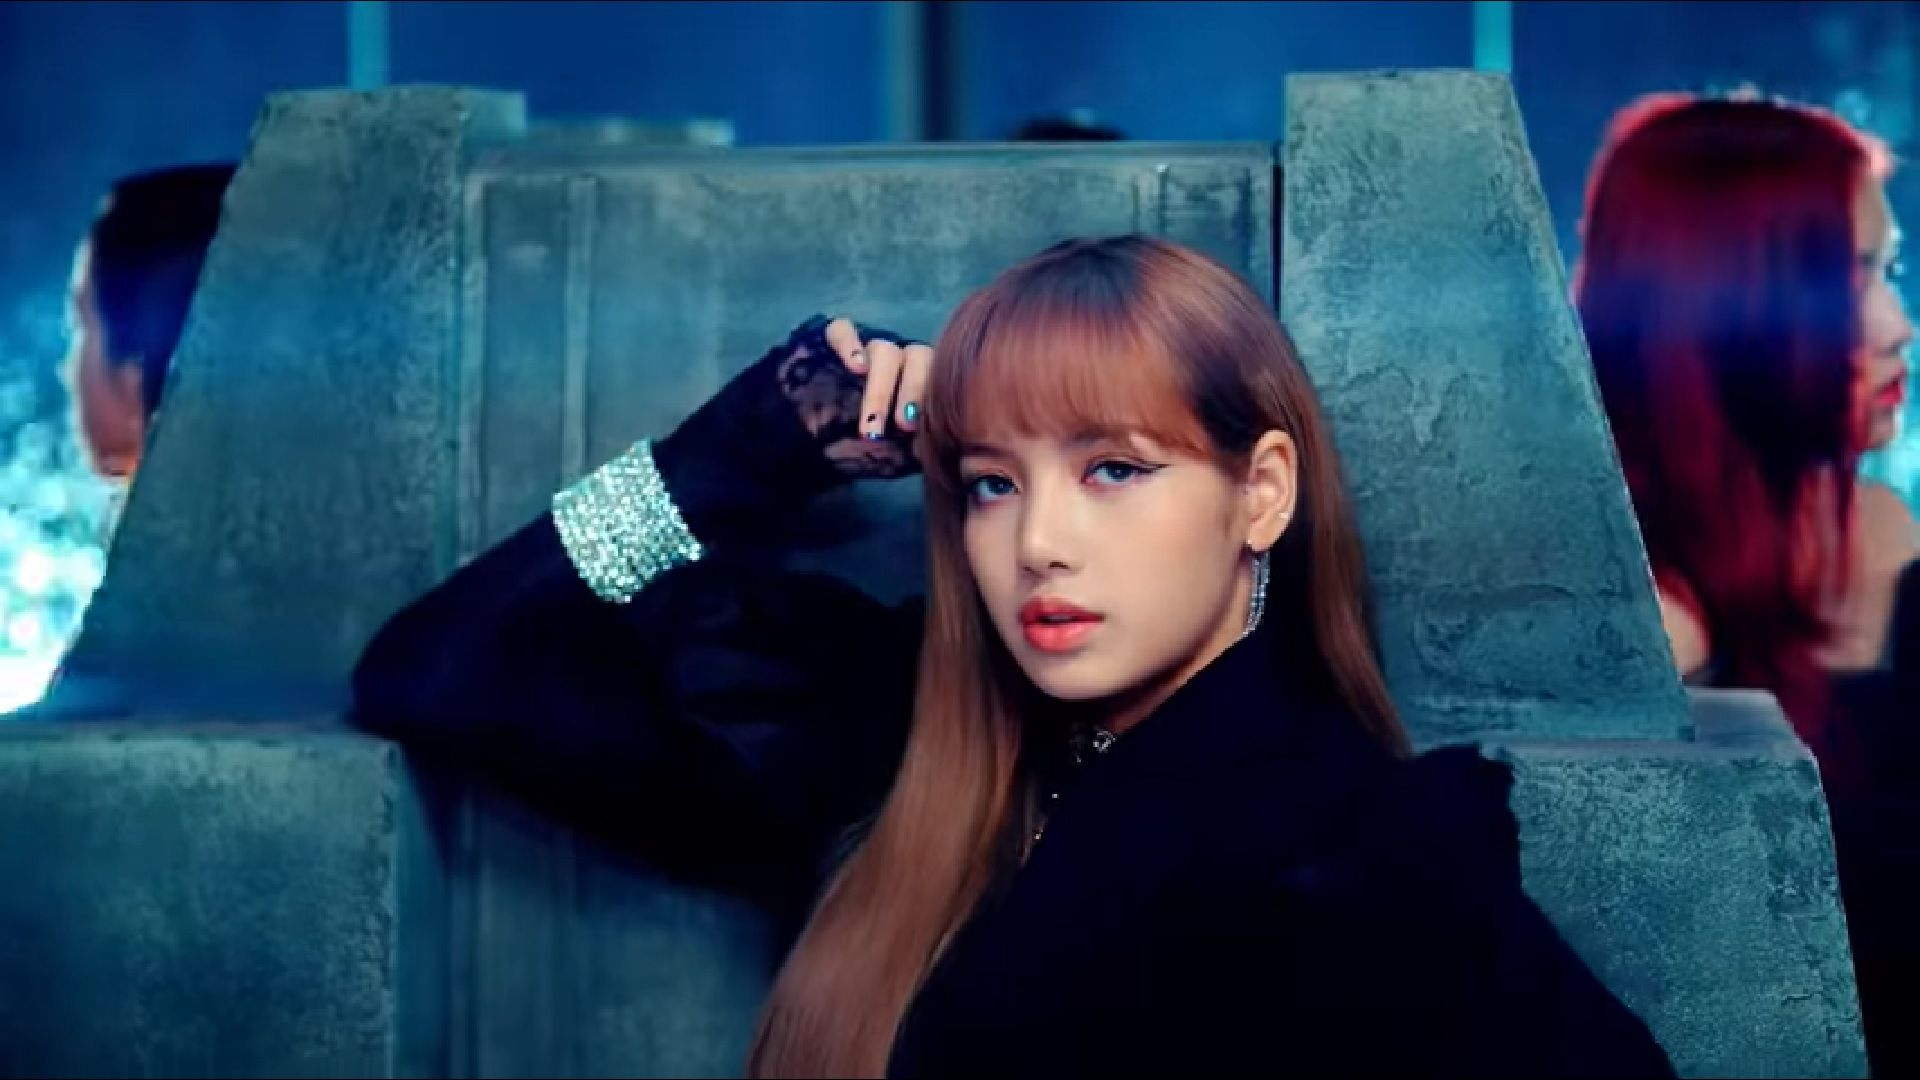 Lisa Blackpink Music Video Kpop Makeup 뚜두뚜두 Ddu Du Ddu Du